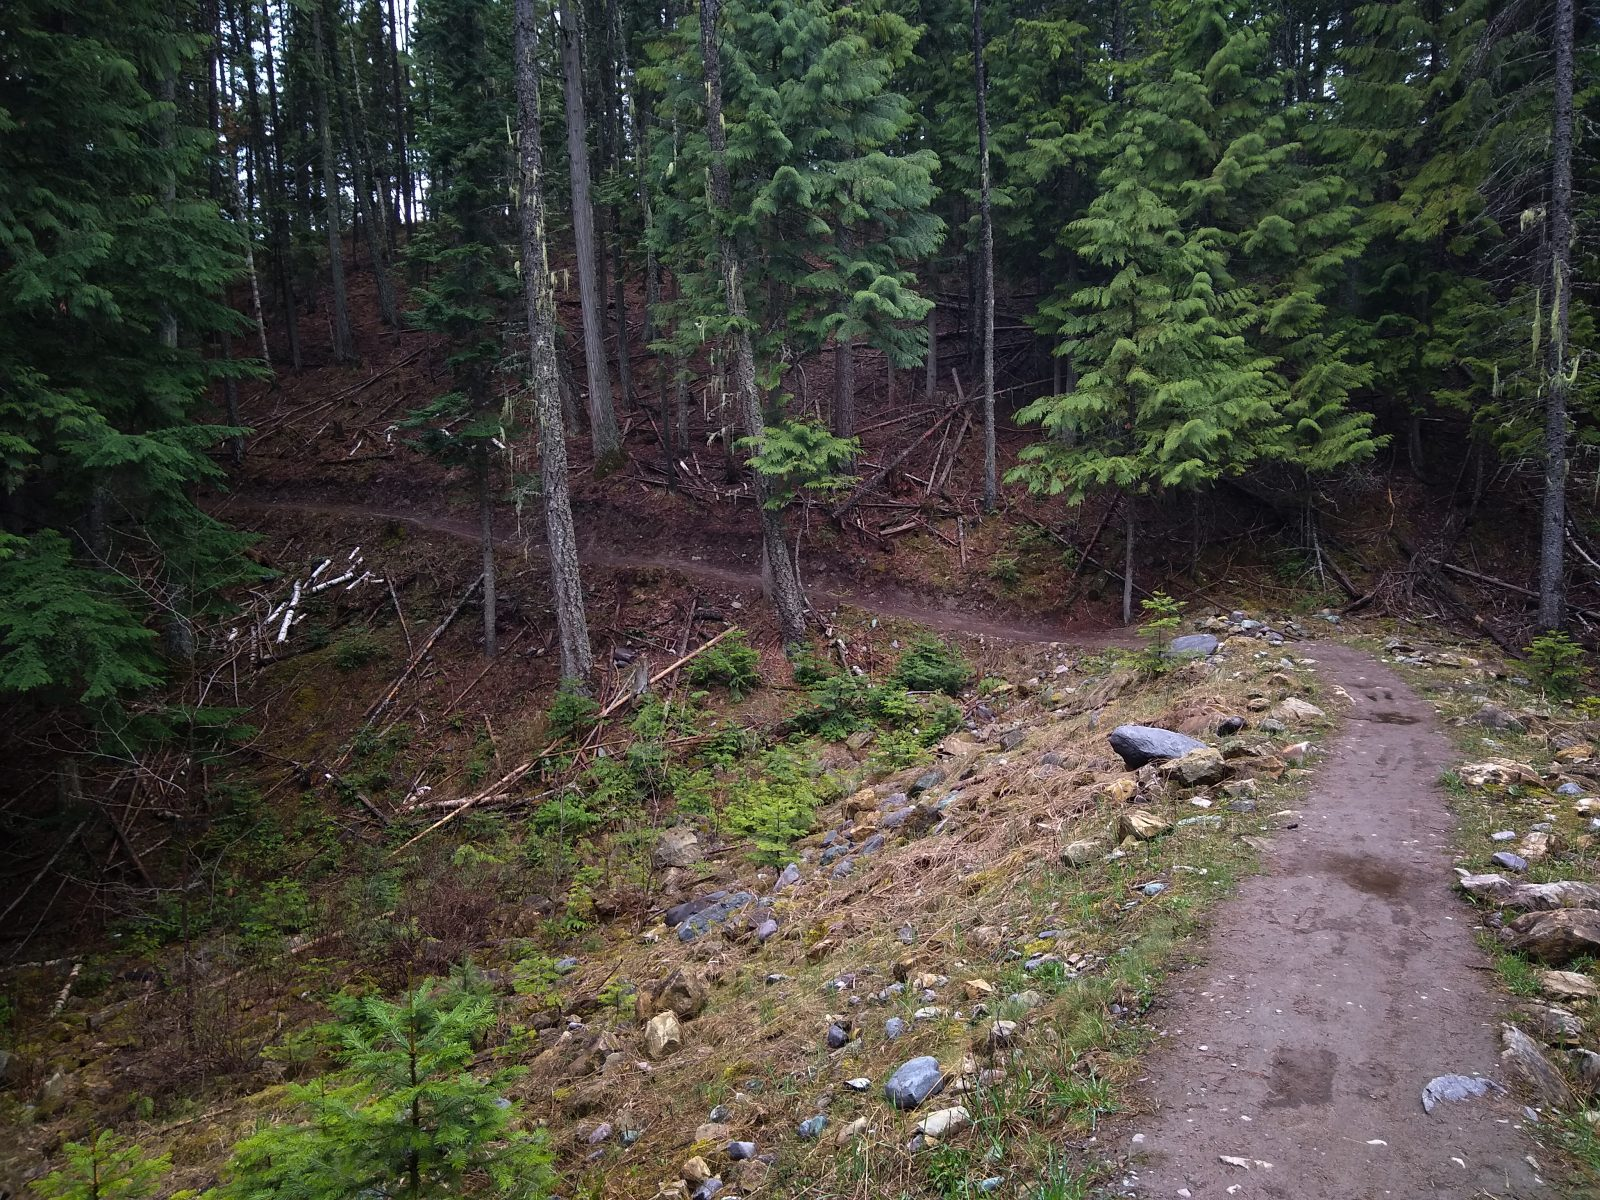 Whitefish Trail - May 7, 2020